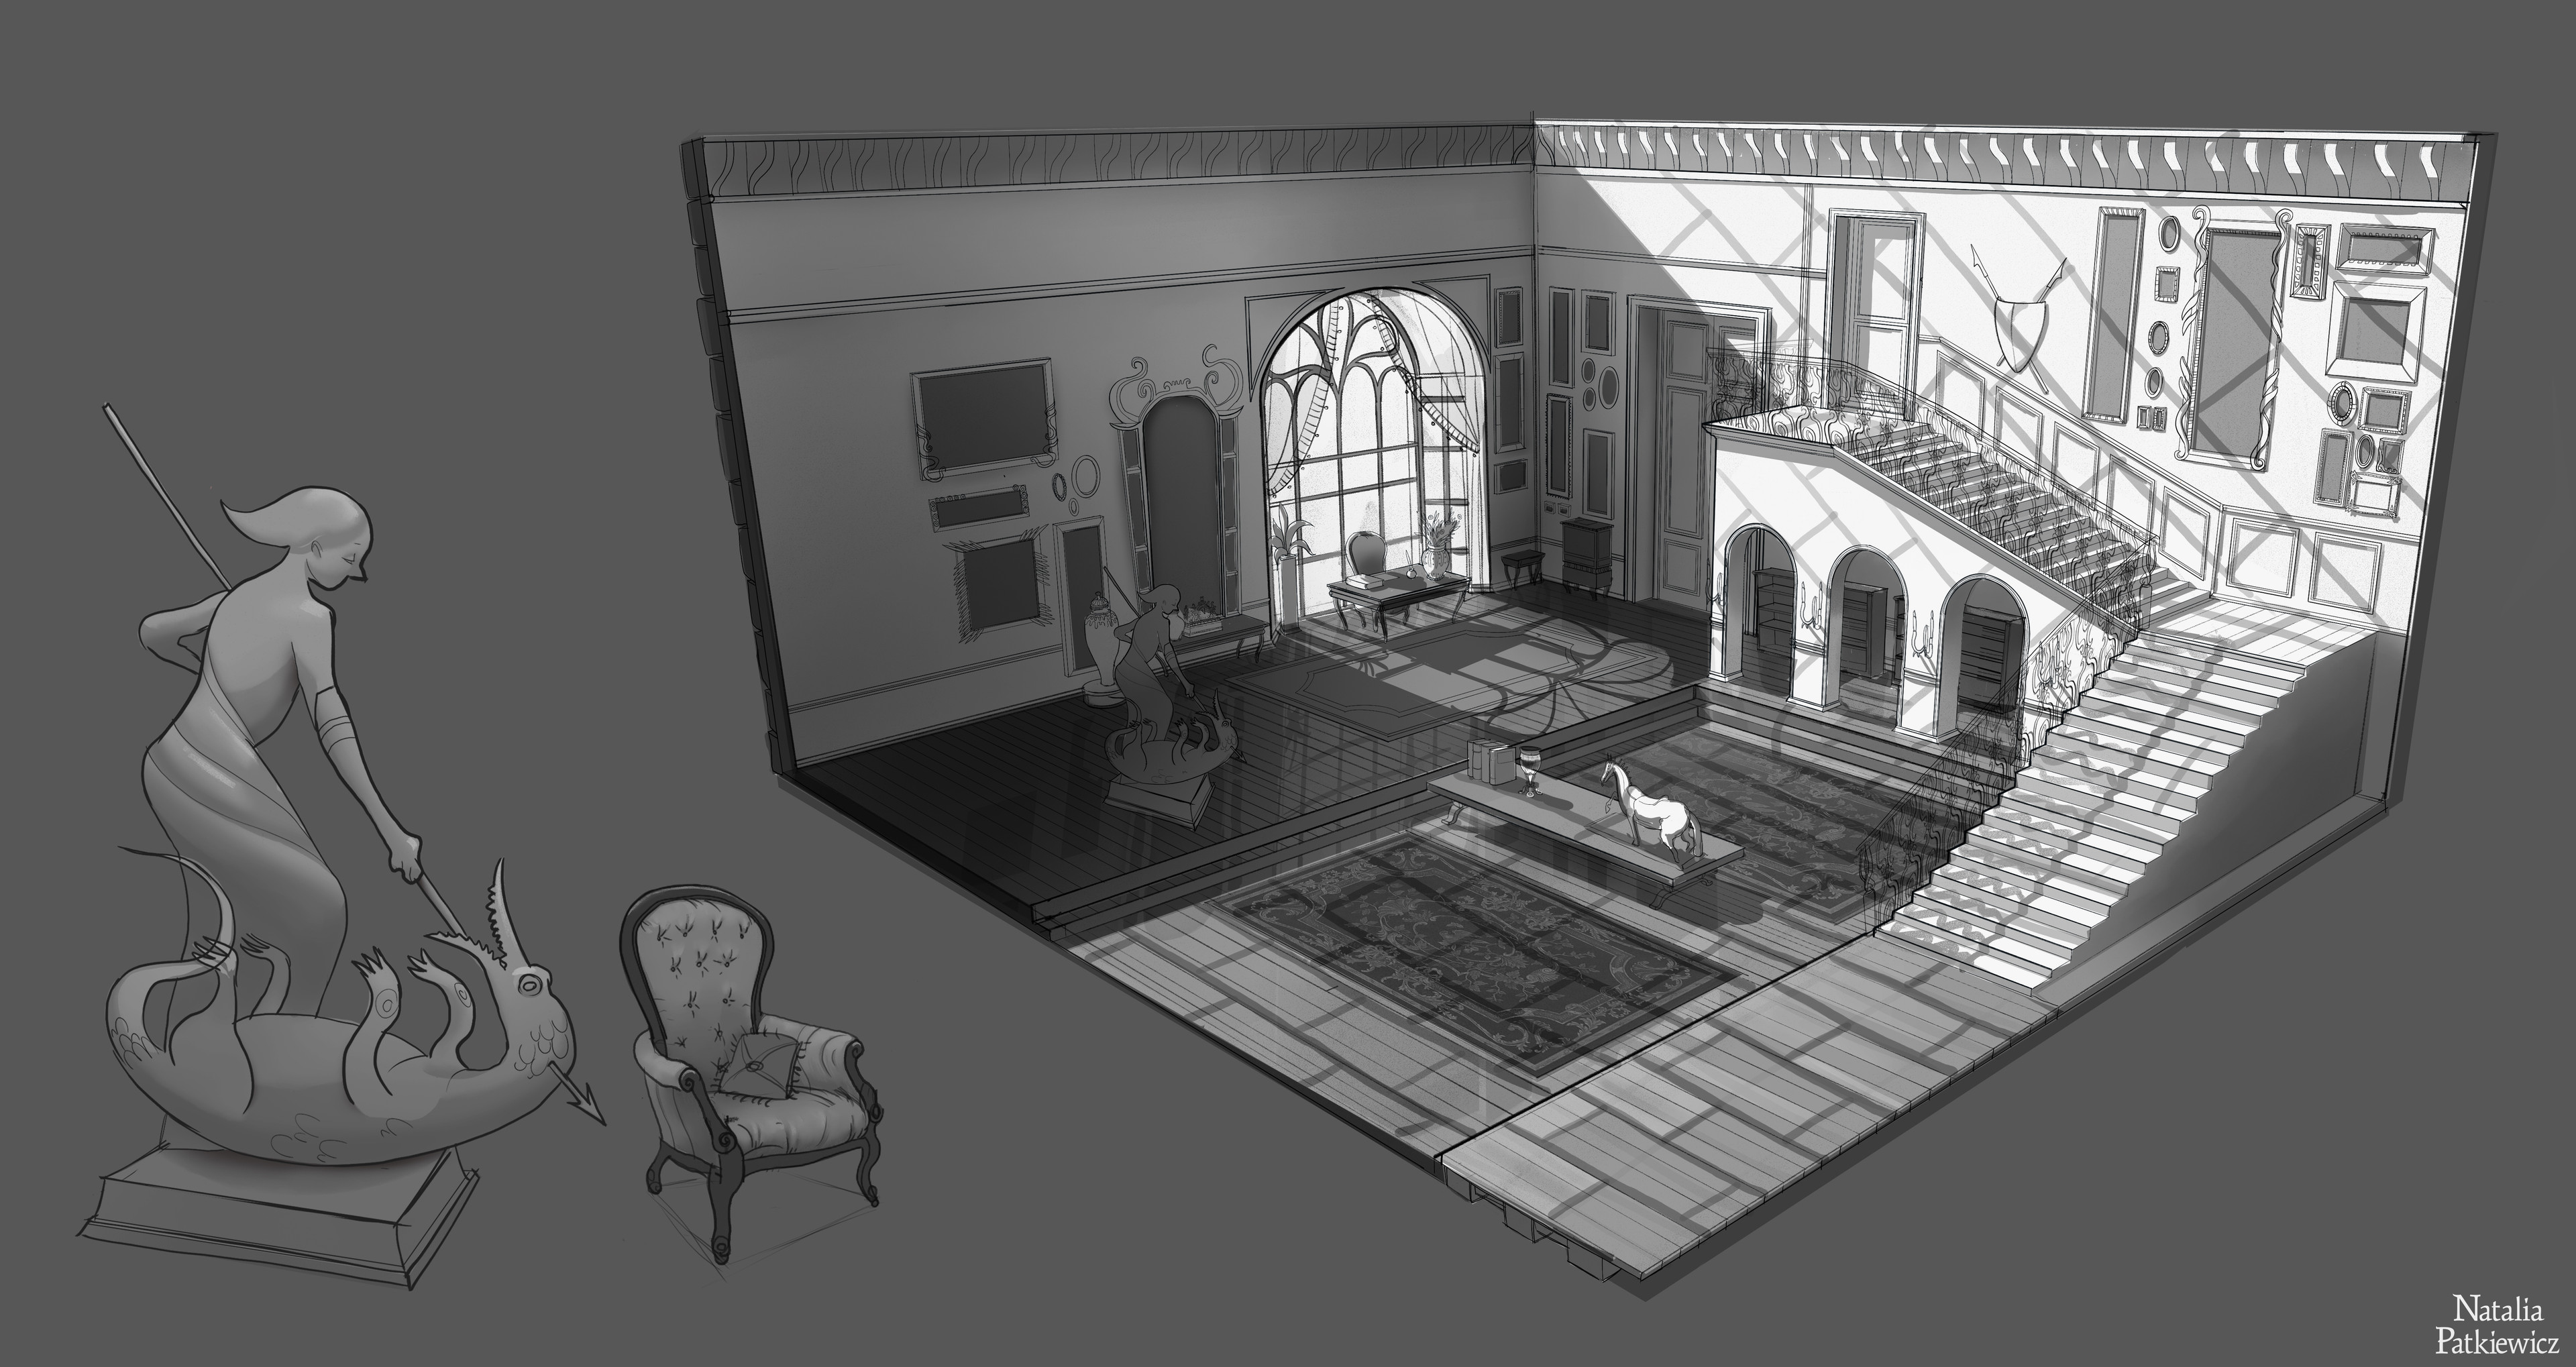 Isometric view onto the set design and prop callout